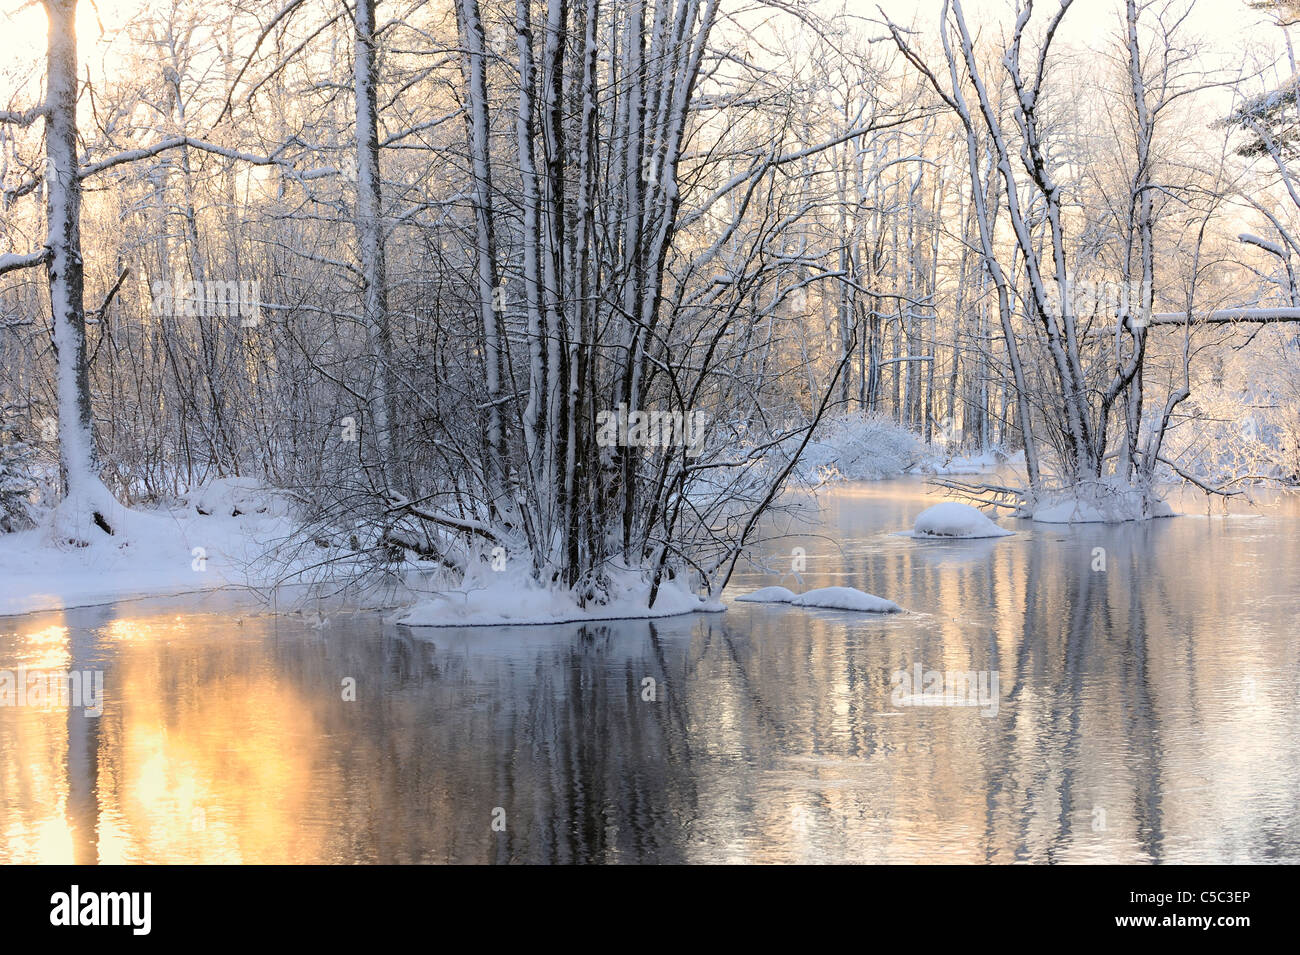 Scenic shot of placid lake with trees in snow - Stock Image